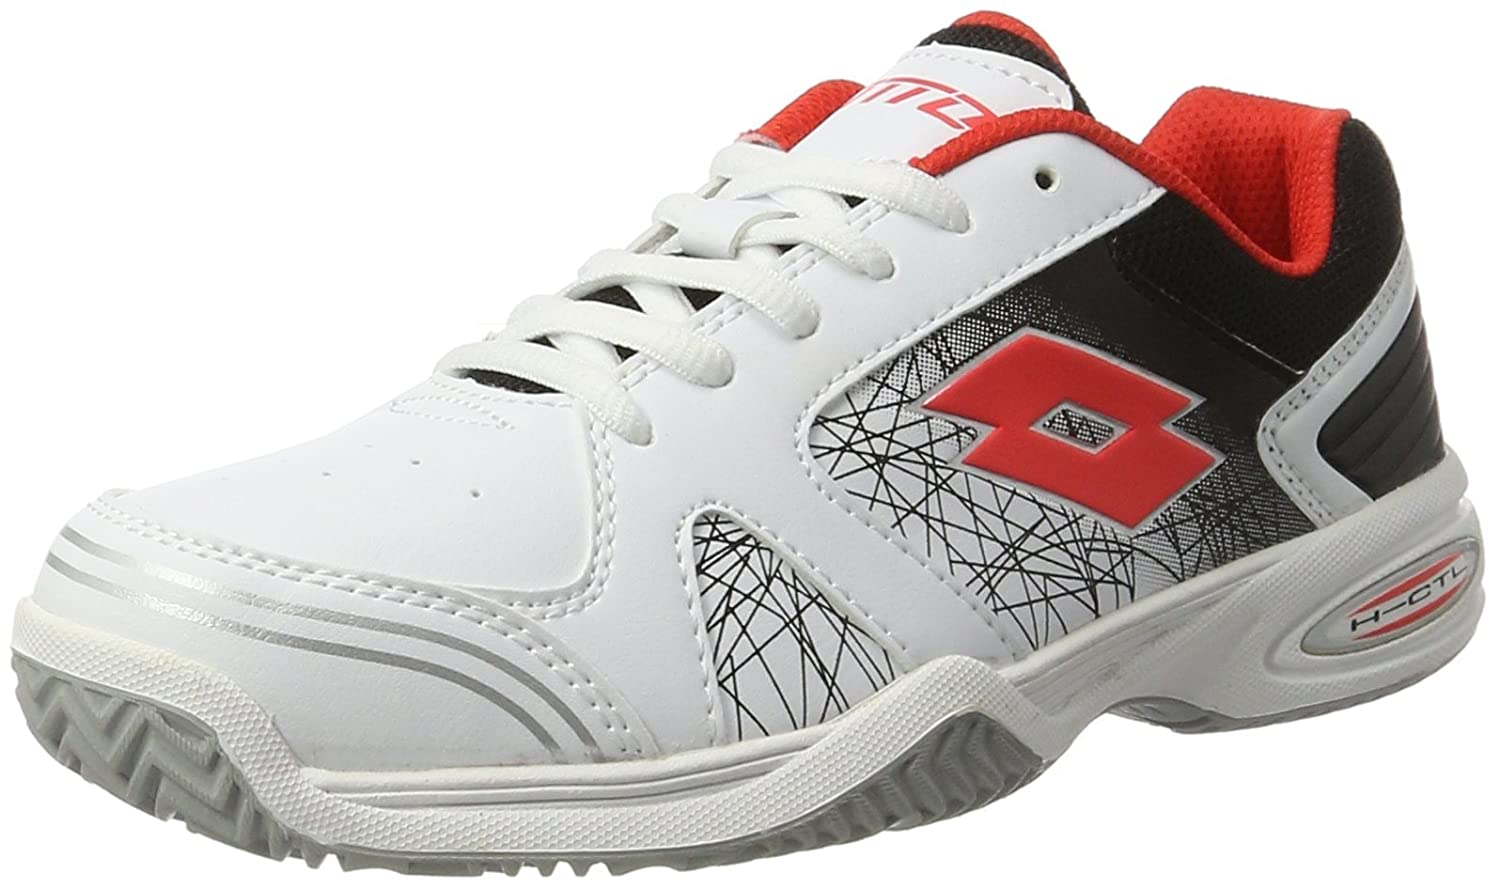 Lotto T-Strike Ii Jr L, Zapatillas de Tenis Unisex infantil Lotto Sport